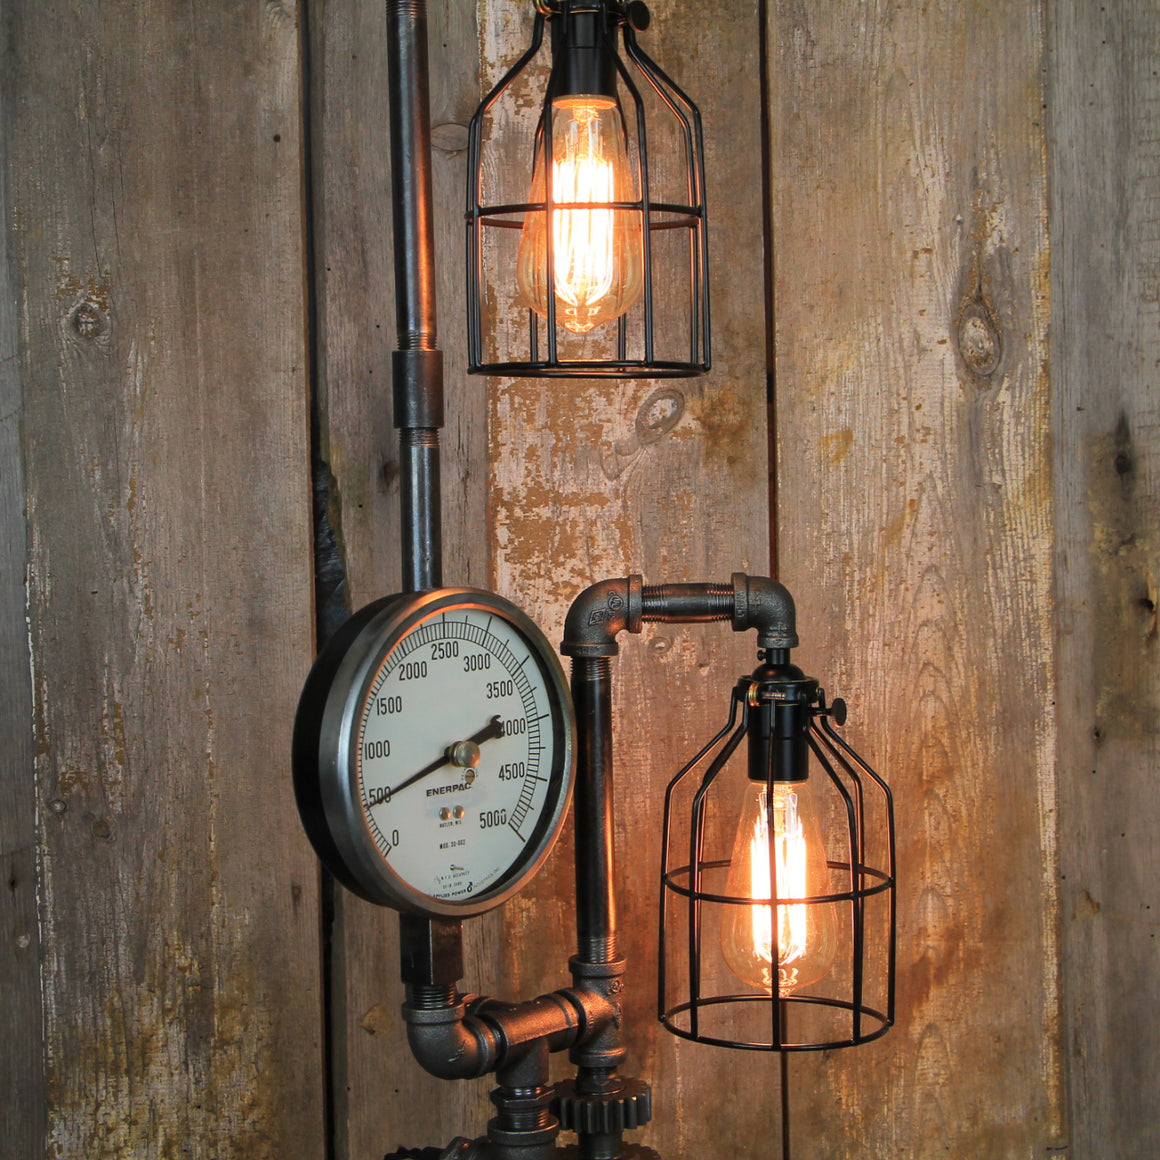 Steampunk Table Lamp with Dual Edison Lights - Steampunk Desk Lamp #286 - The Lighting Works